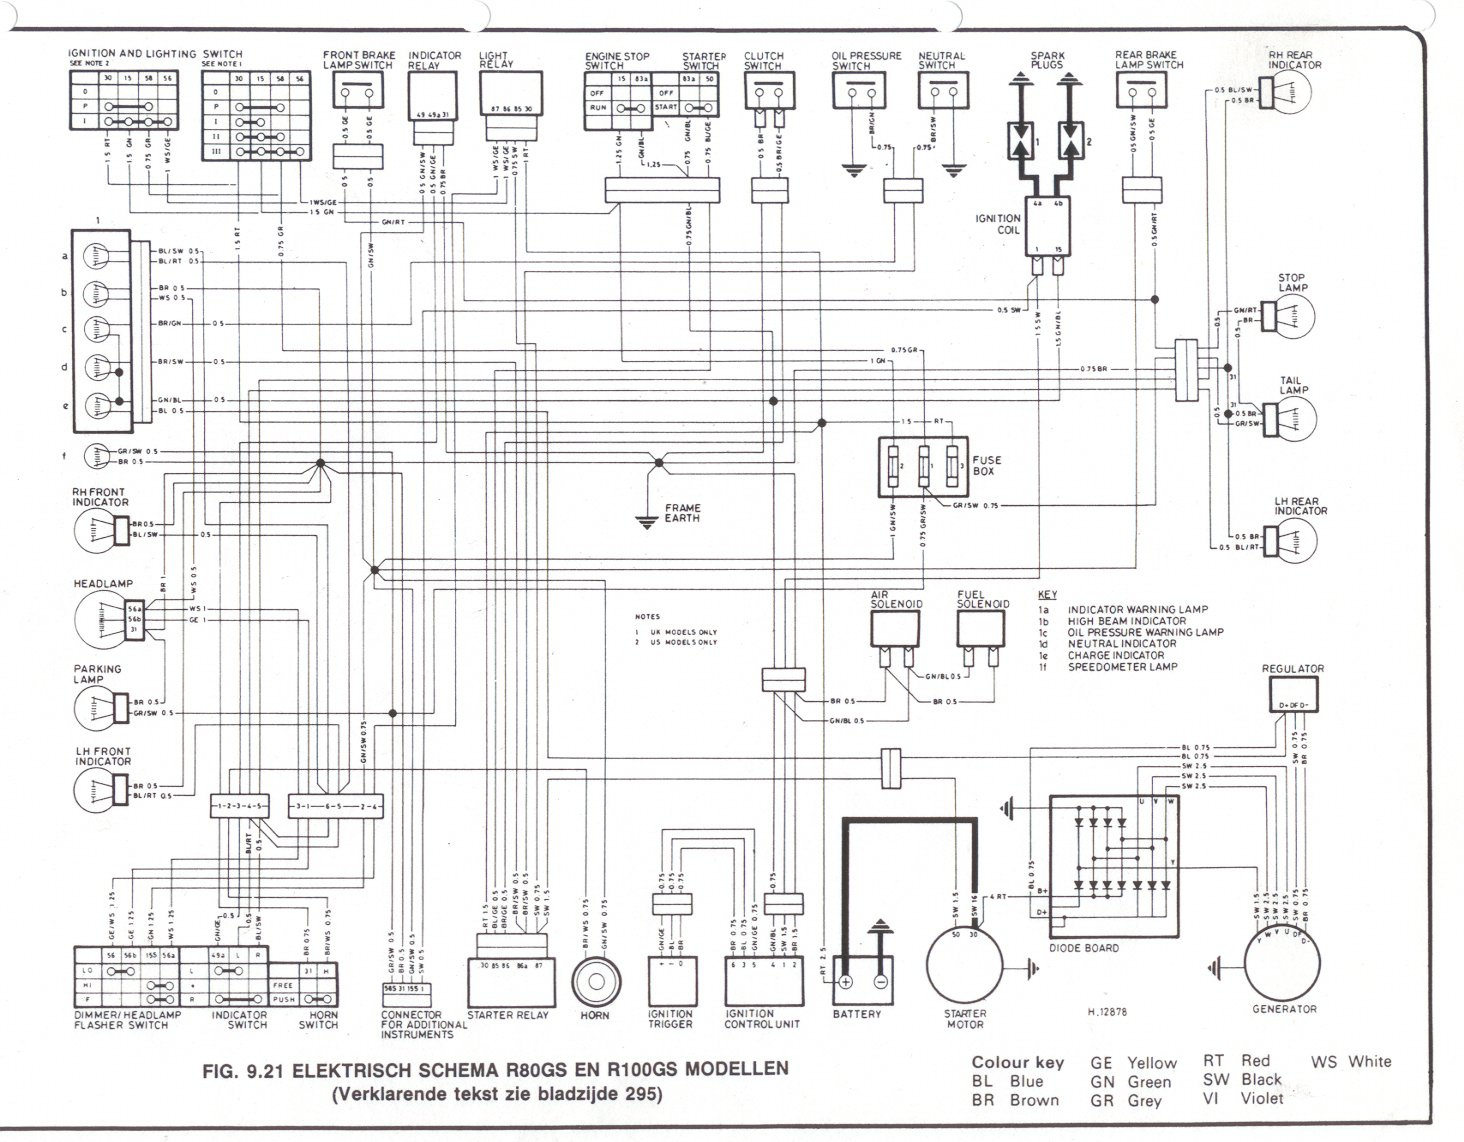 2007 vw gti fuse diagram also ignition coil wiring diagram